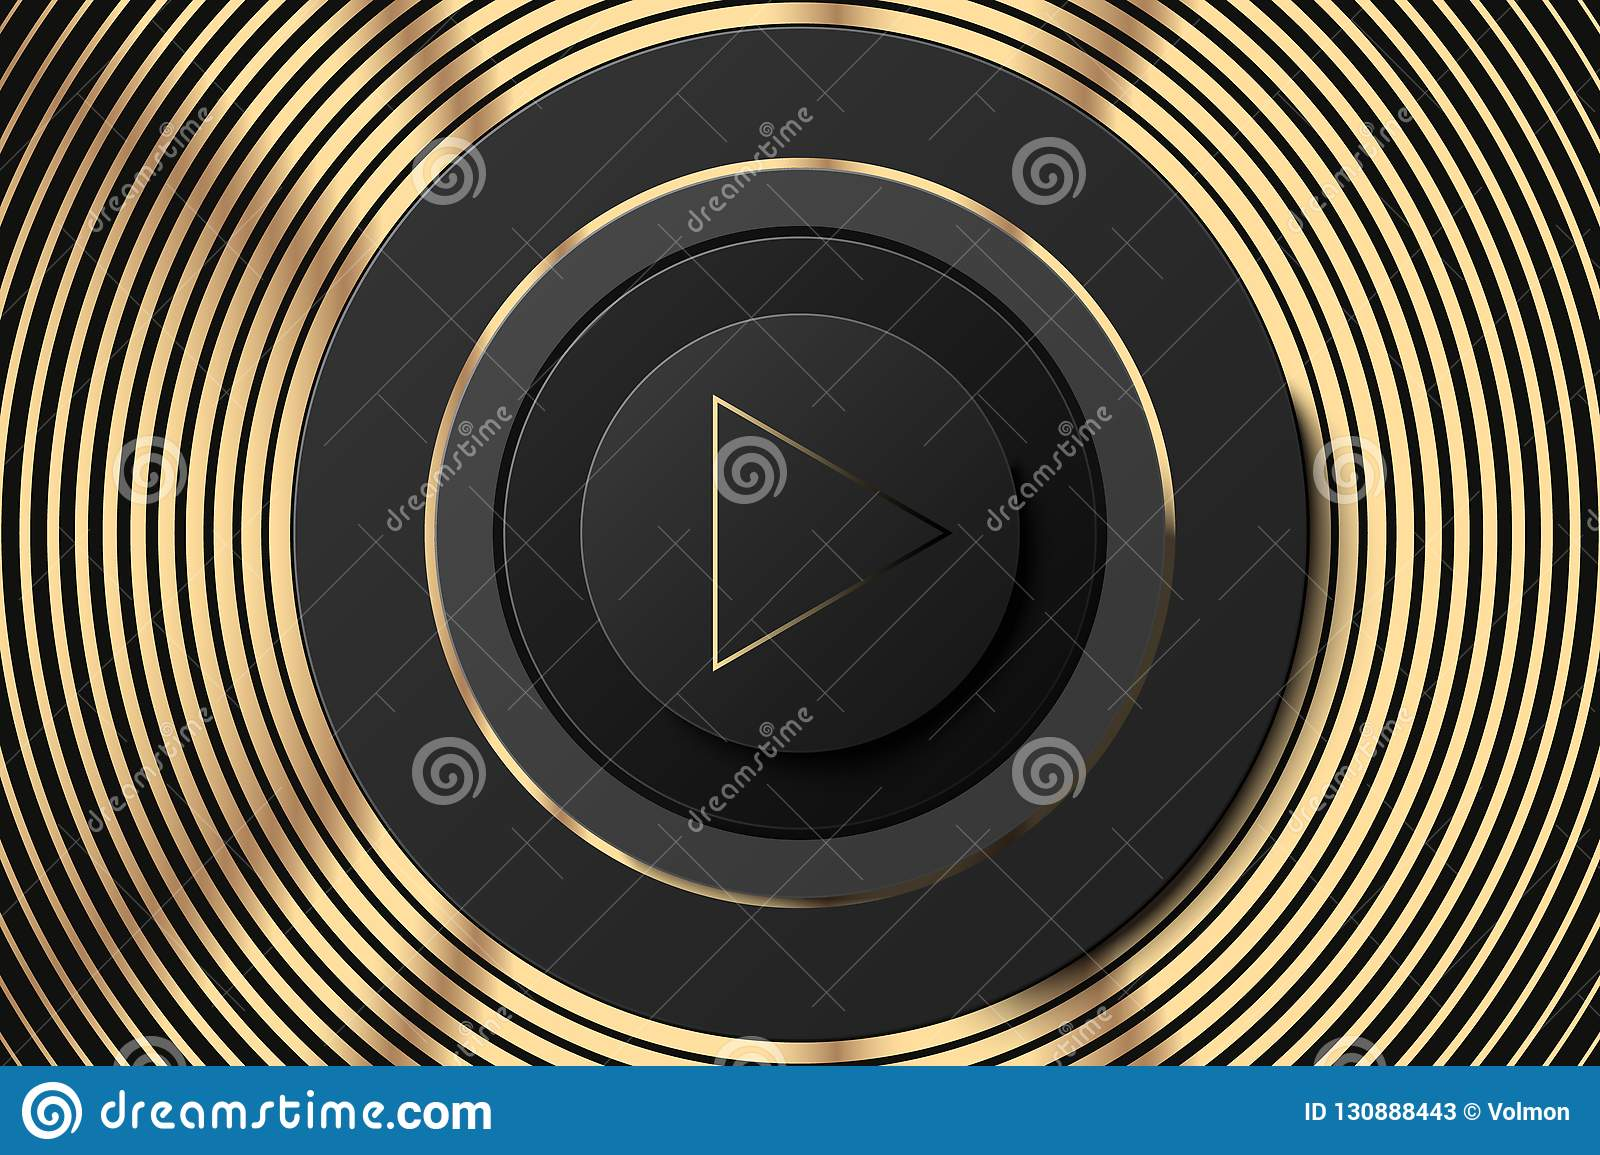 Vector Dark Circle Icon With Play Button Black And Gold